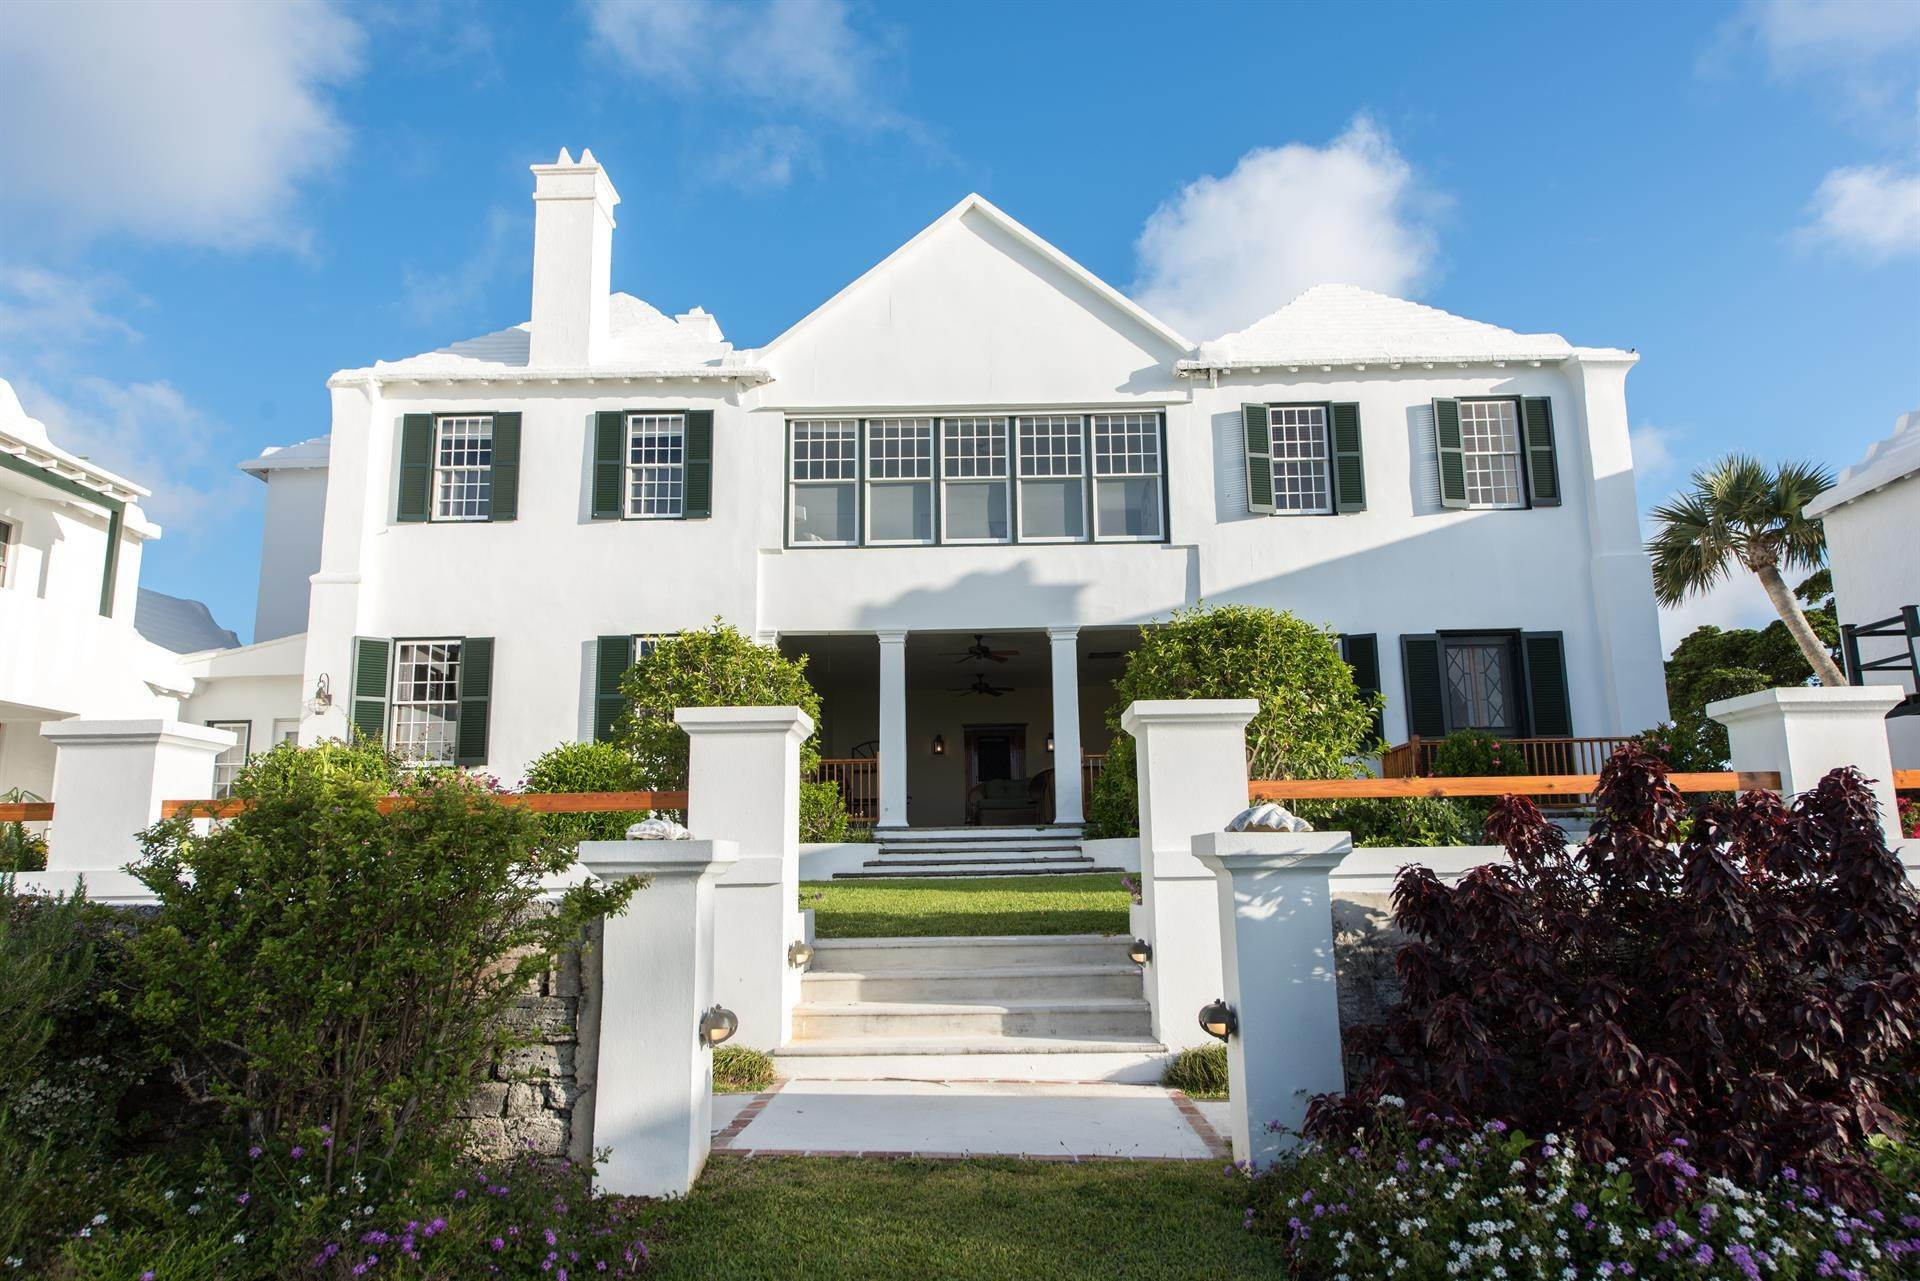 21. Residência para Venda às Bellevue Estate At Grape Bay Beach Bellevue Estate At Grape Bay Beach, 6 Bellevue Drive,Bermuda – Sinclair Realty